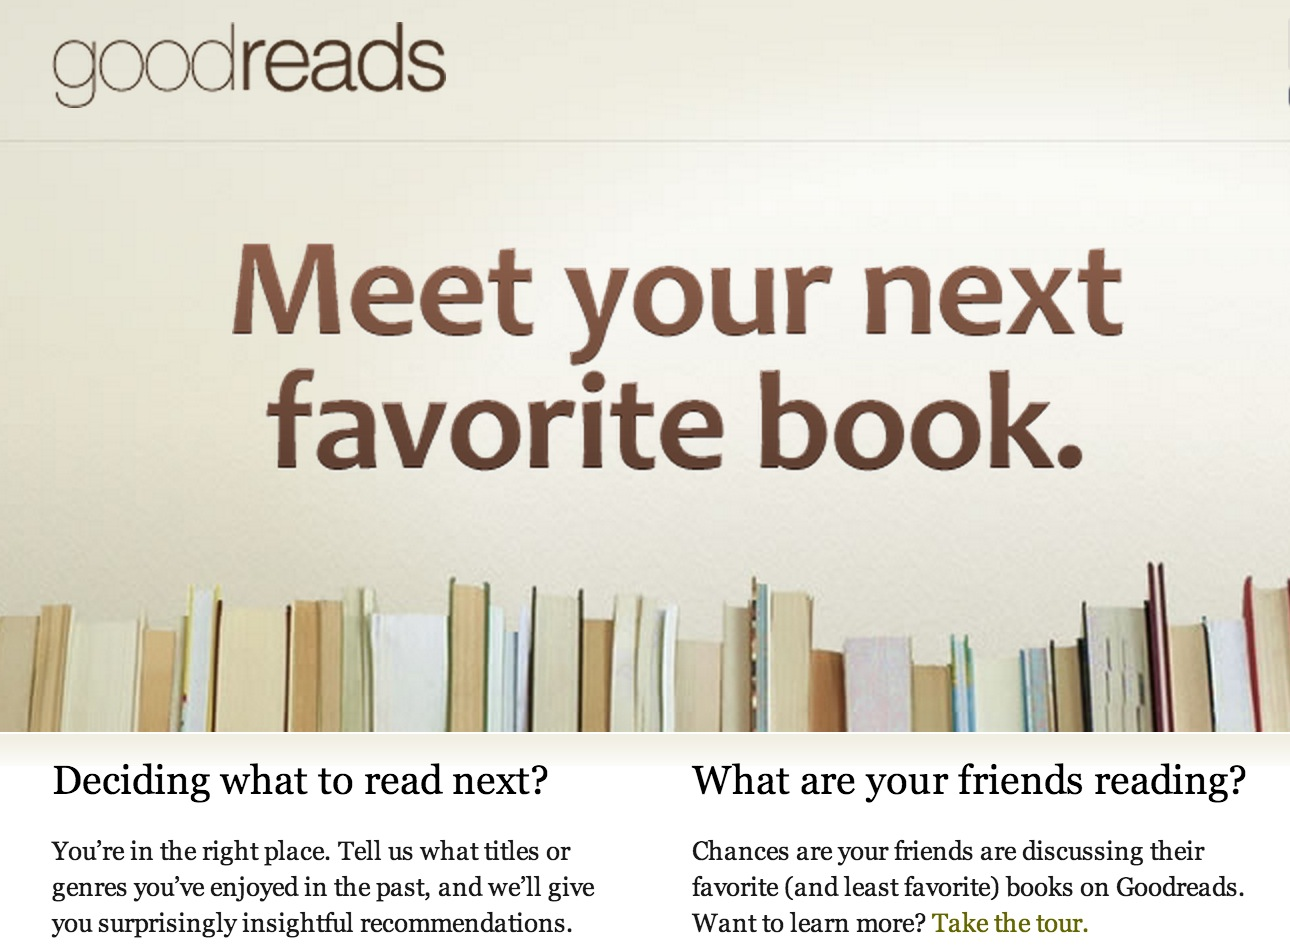 Breaking News: Amazon.com to Acquire Popular Recommendation and Sharing Site - Goodreads.com